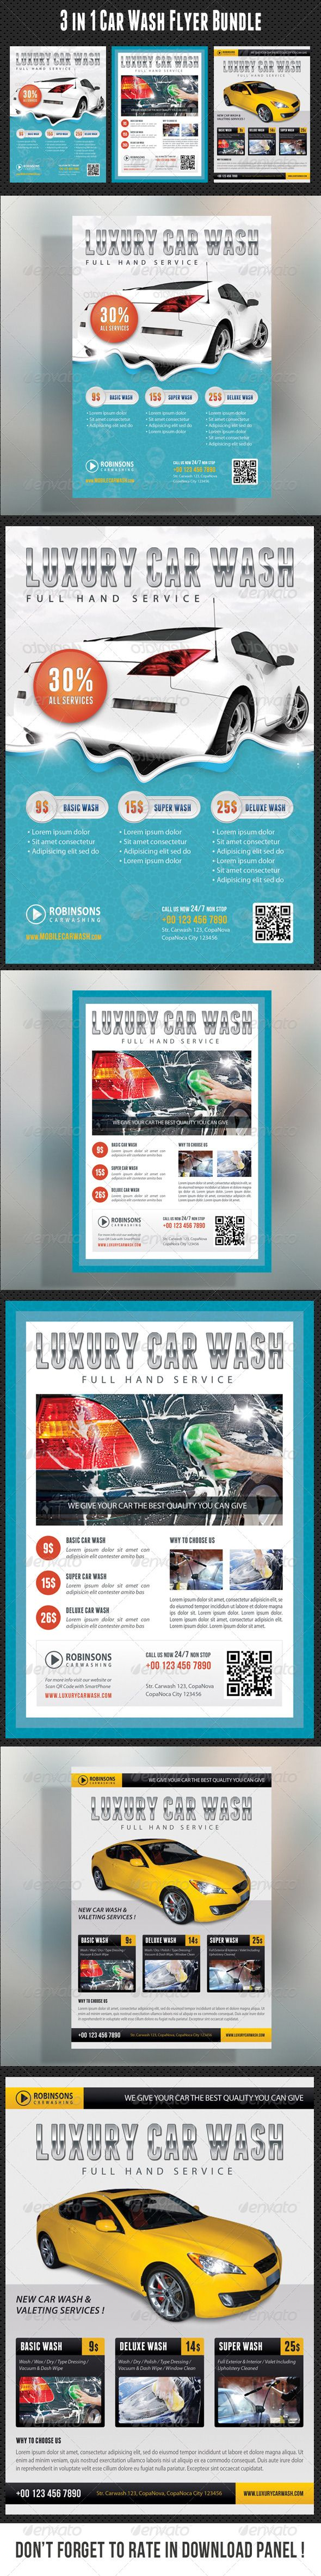 3 High impact, crisp and very easy to use Luxury Car Wash Flyer Templates.Perfect for a wide range of car wash related businesses like: Car Wash & Auto Detailing Services or Car Wash Equipment. Pack included:   3 Flyer Templates  3 High Resolution PSD Files